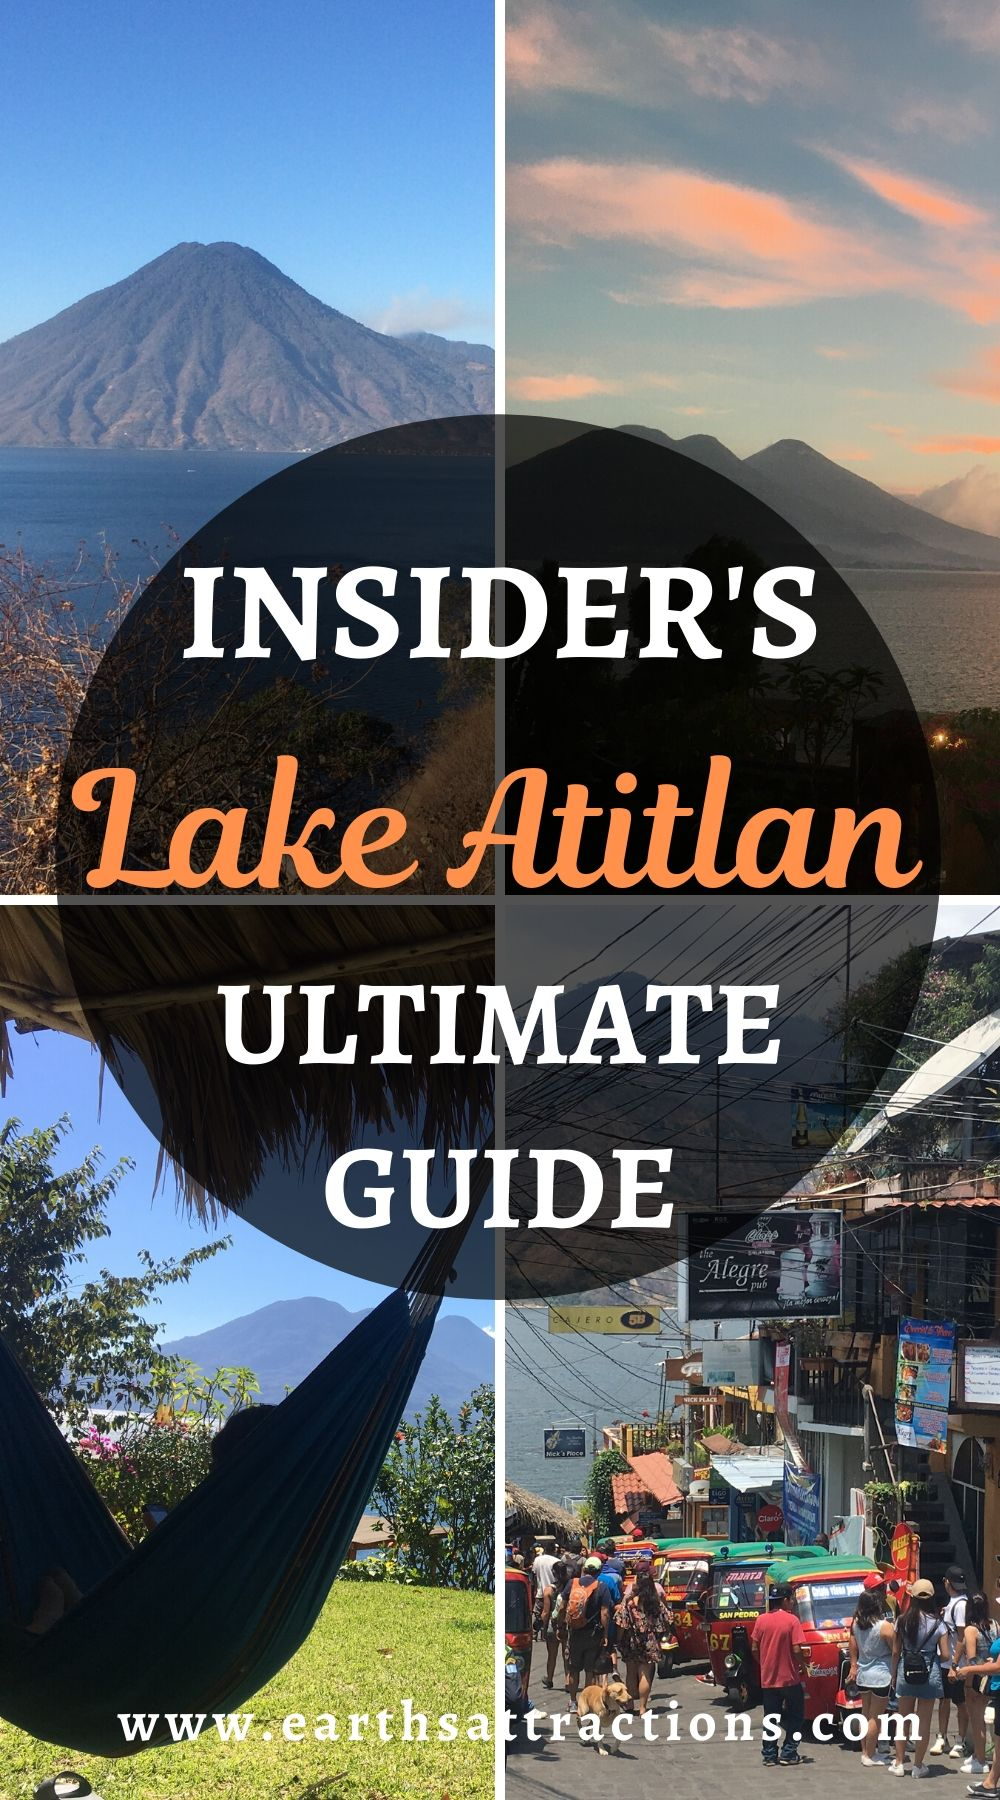 Insider's guide to Lake Atitlan. Discover the best things to do in Lake Atitlan in 7 days. How to spend an amazing week in Lake Atitlan Guatemala, visiting the best Lake Atitlan villages, taking amazing Lake Atitlan hikes, and relaxing! #lakeatitlan #atitlanguide #atitlanitinerary #atitlanguatemala #earthsattractions #travelguides #america #centralamerica #traveldestinations